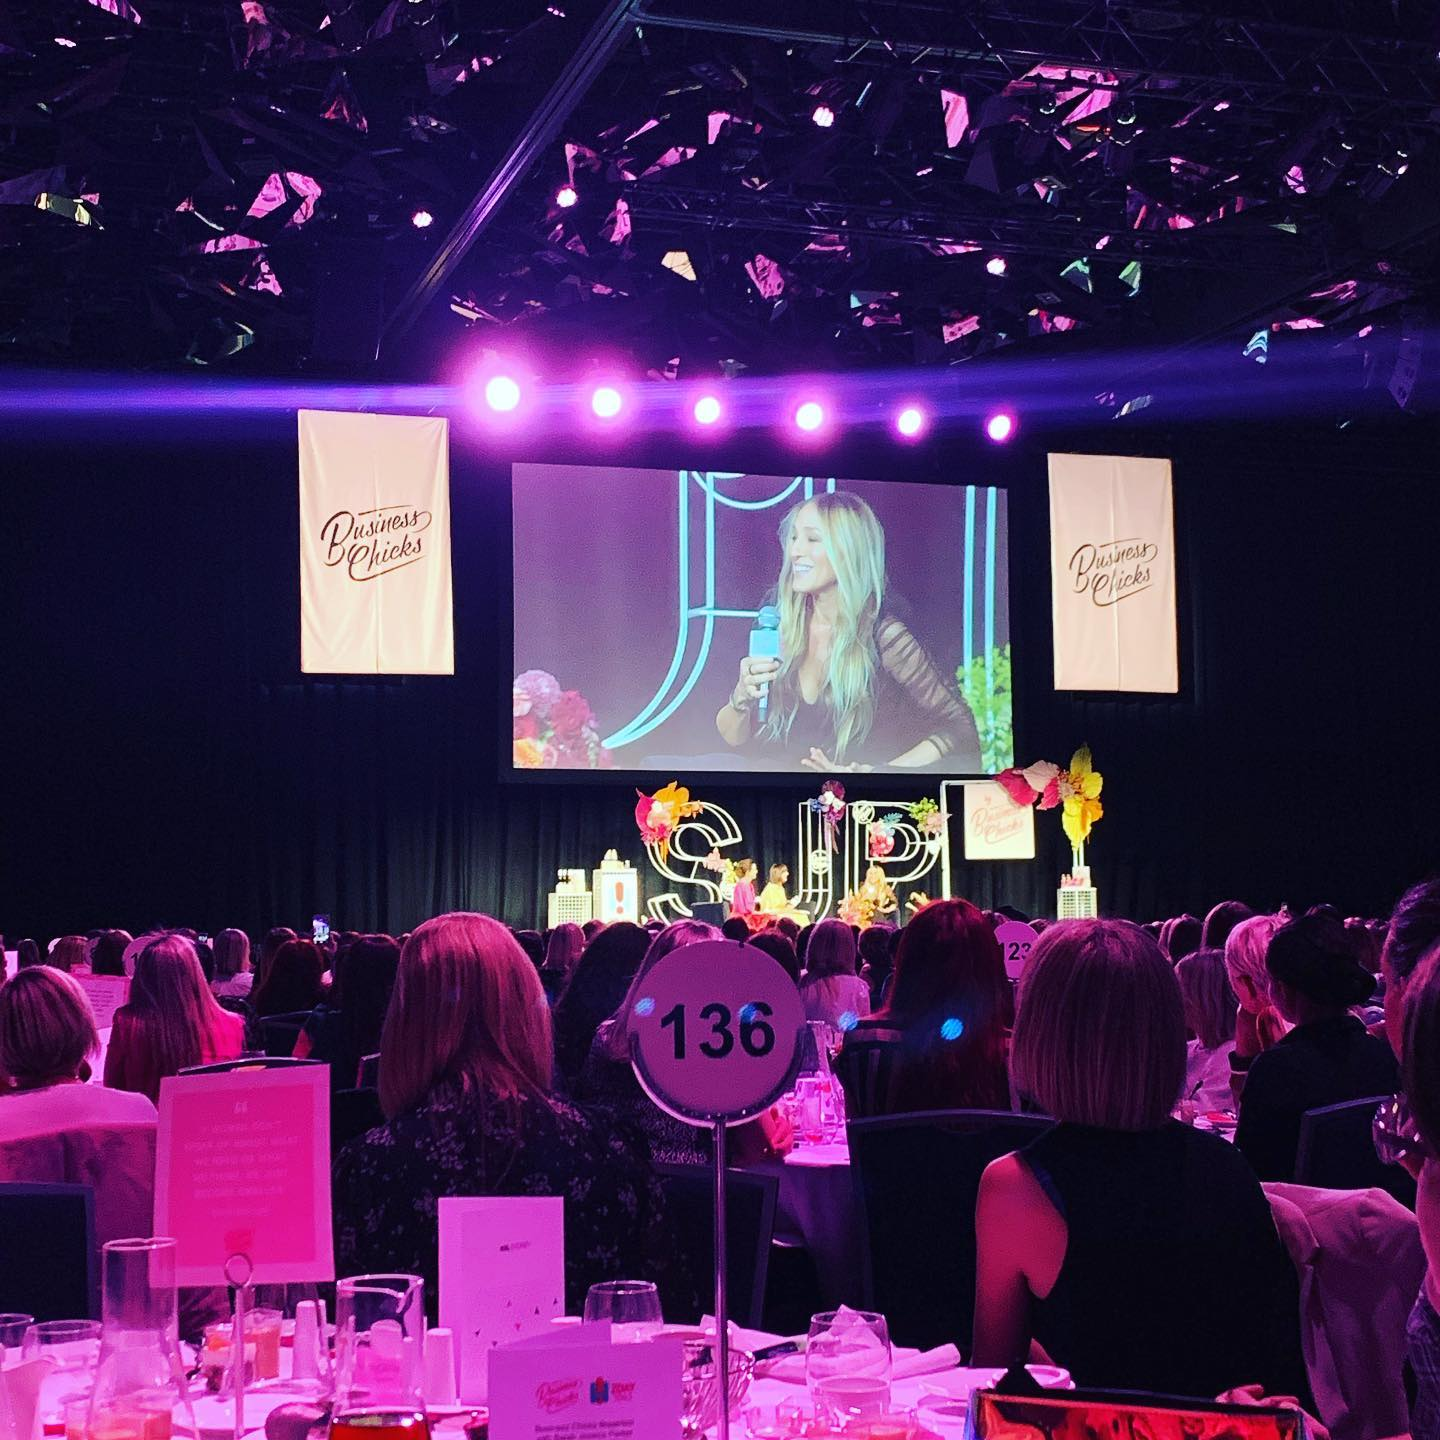 It's not every day that you get to have breakfast with @sarahjessicaparker ... Well, sort of... Fantastic @businesschicks event yesterday with SJP, talking all things Sex and the City, her businesses and her secrets to success in business and family life 🗝Monday morning well spent 🏼 #PersonalDevelopment #Motivation #Inspiration #BusinessChicks